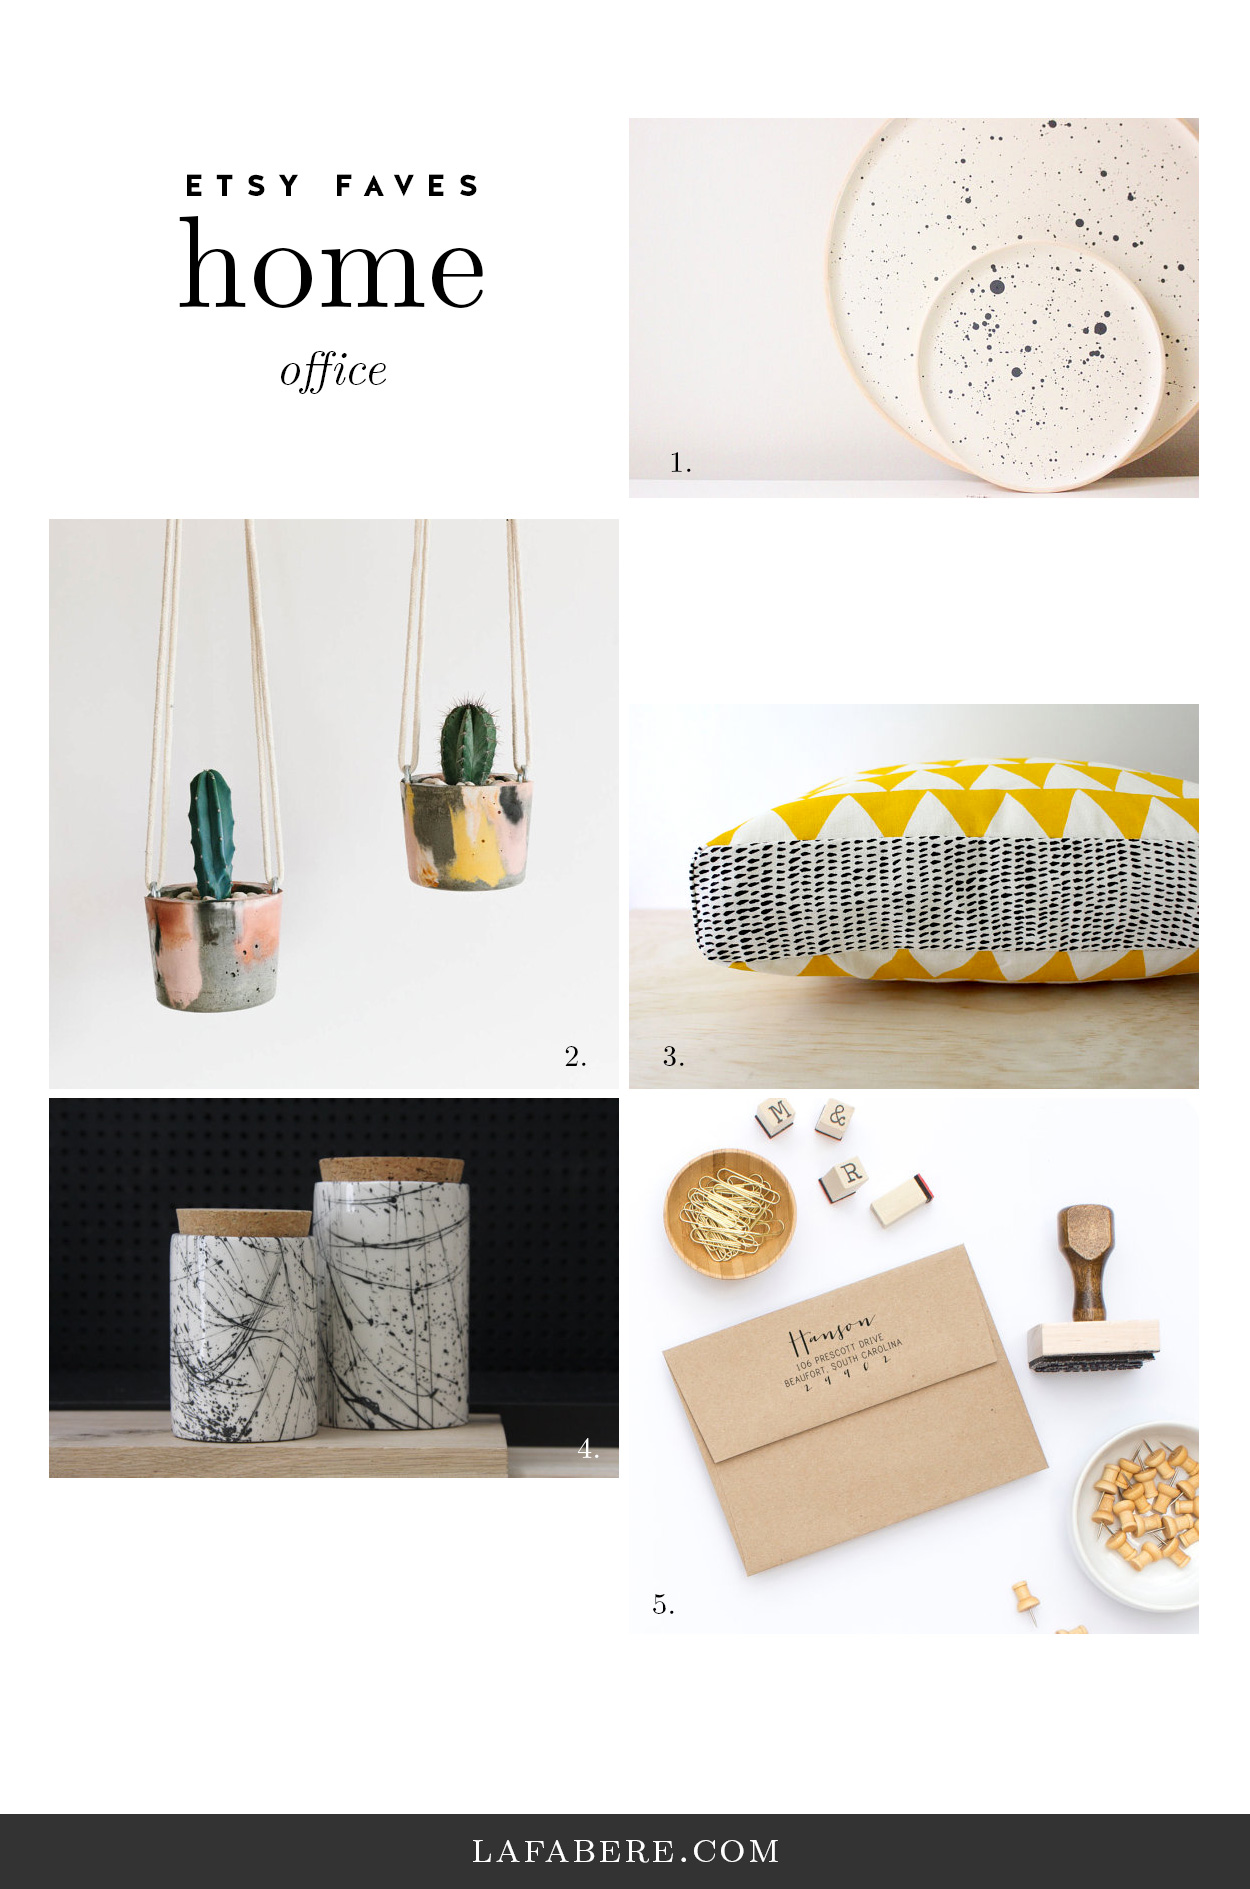 LaFabere.com/blog Etsy Faves ? Sprin gHome Office